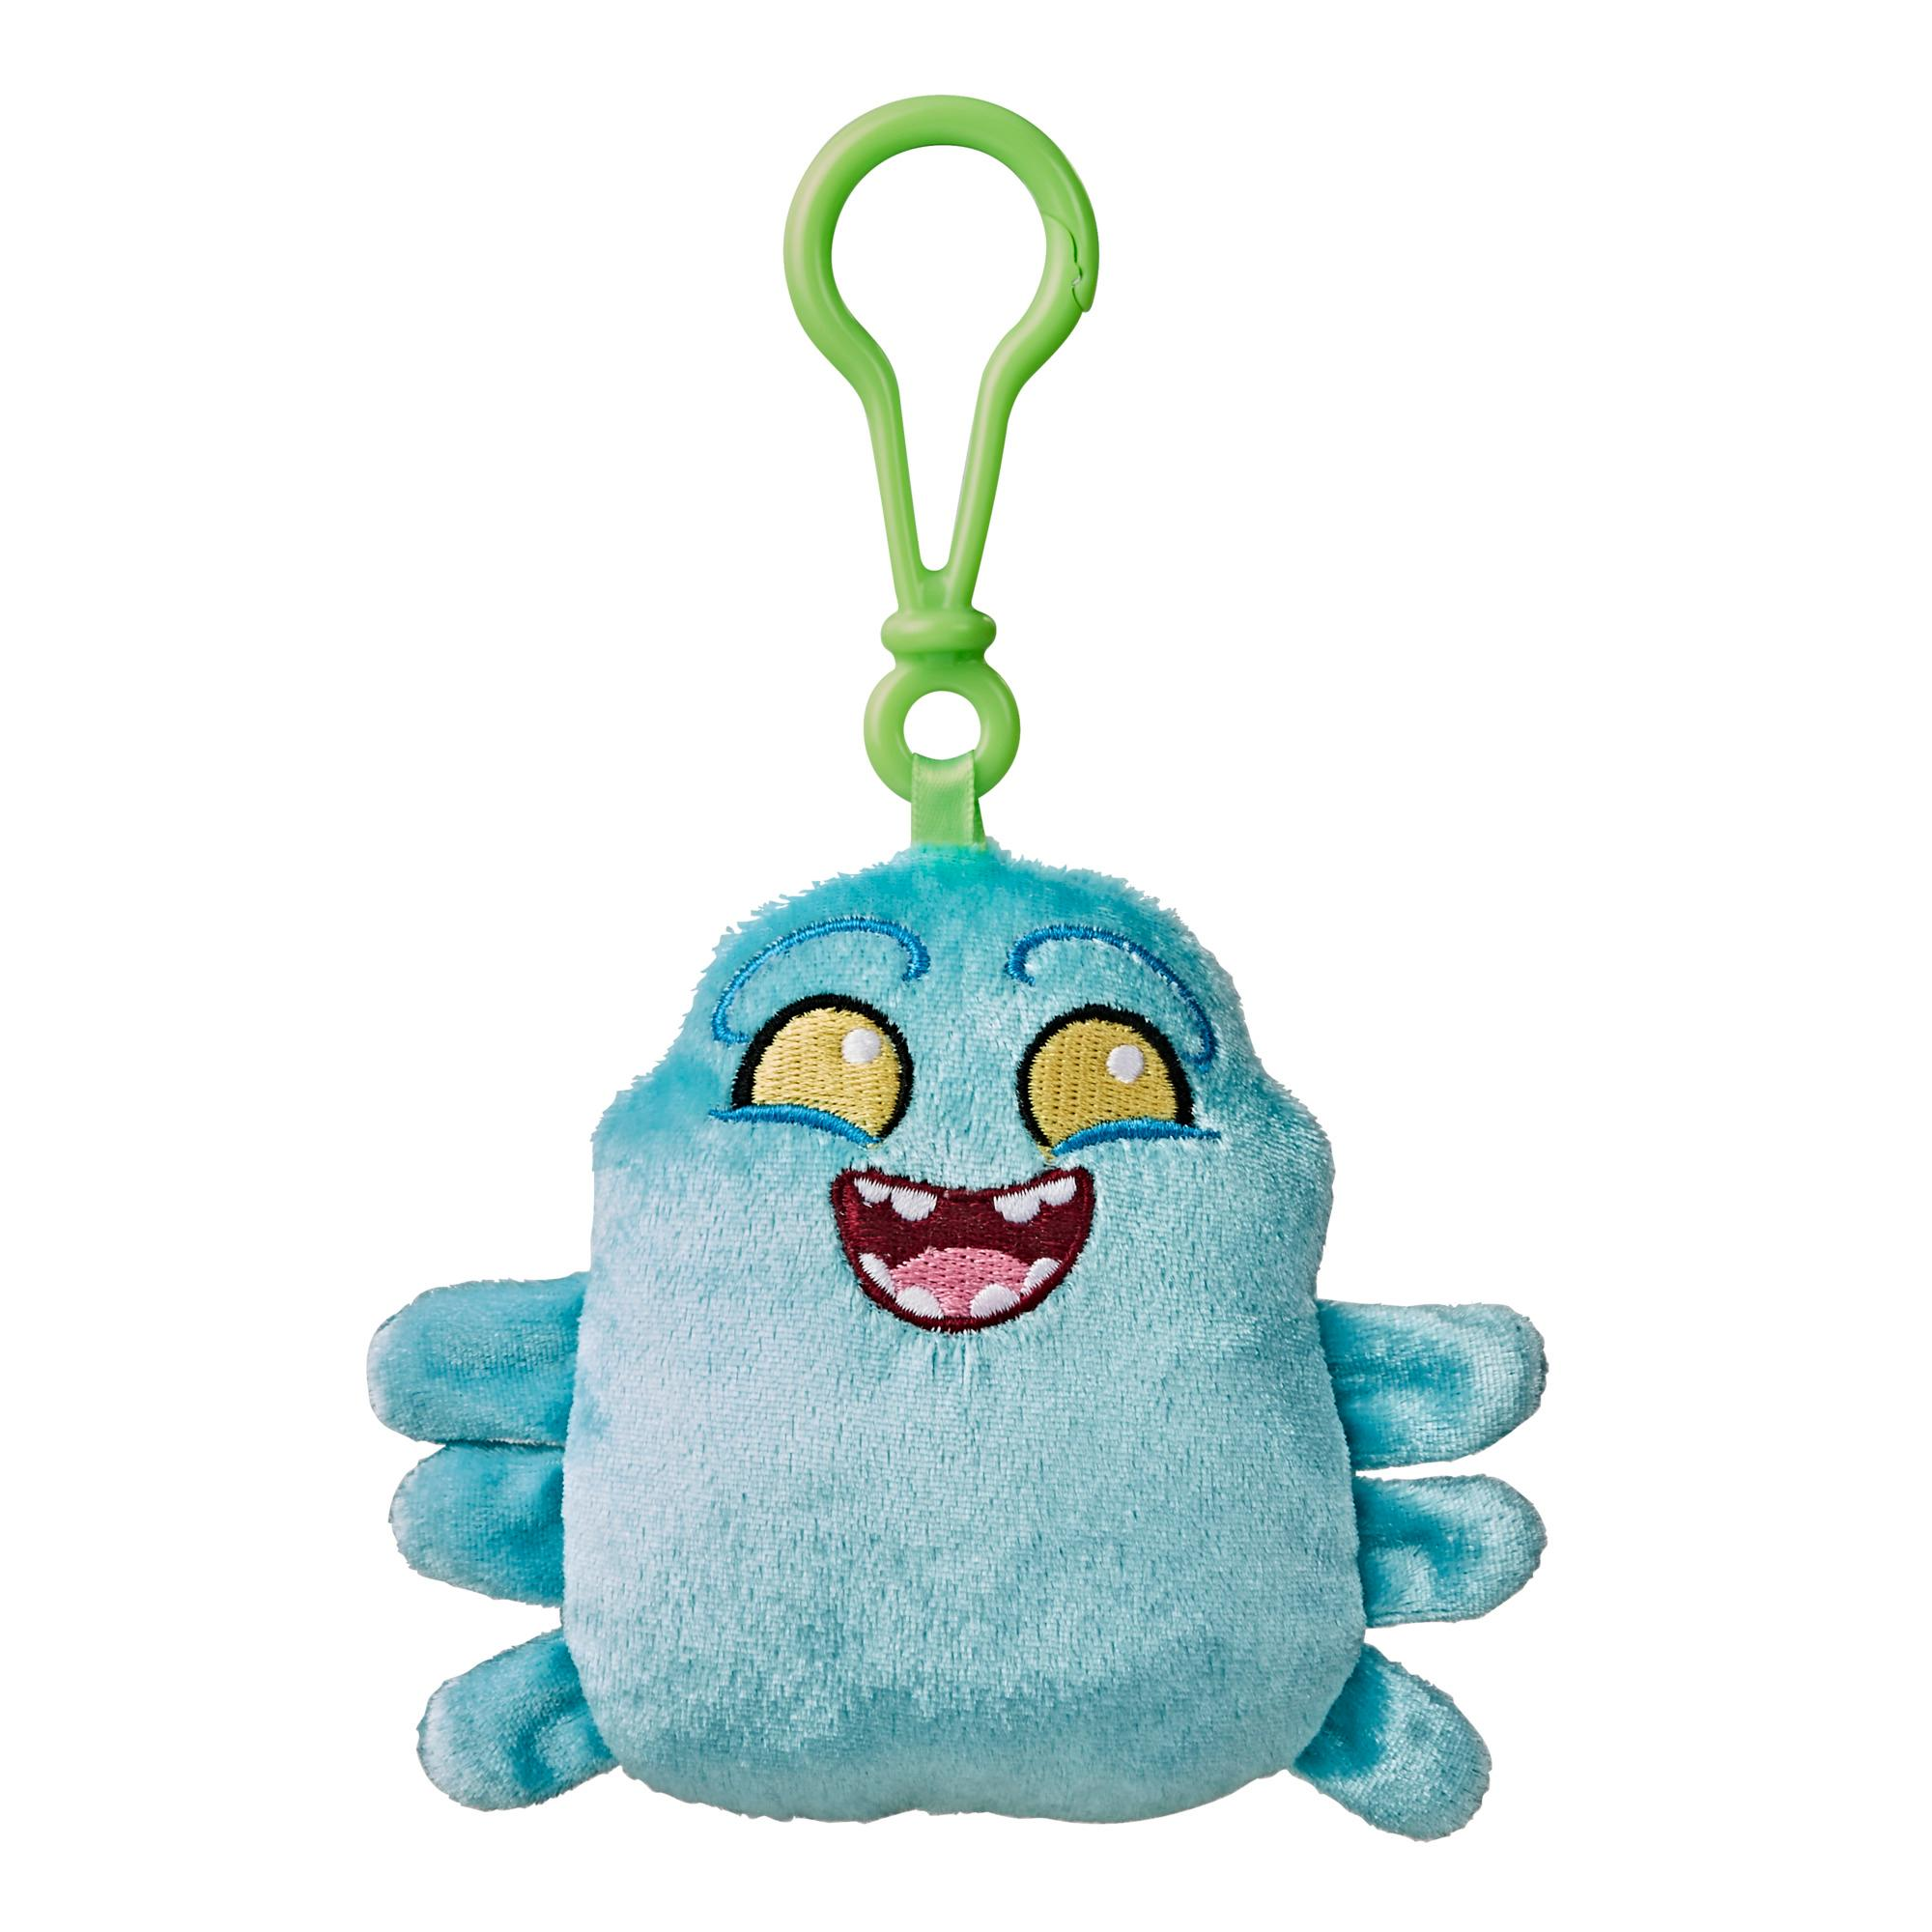 Ghostbusters Paranormal Plushies Muncher Stuffed Ghost Cuddly Soft Toy for Kids Ages 4 and Up Naptime Snuggle Time Plush